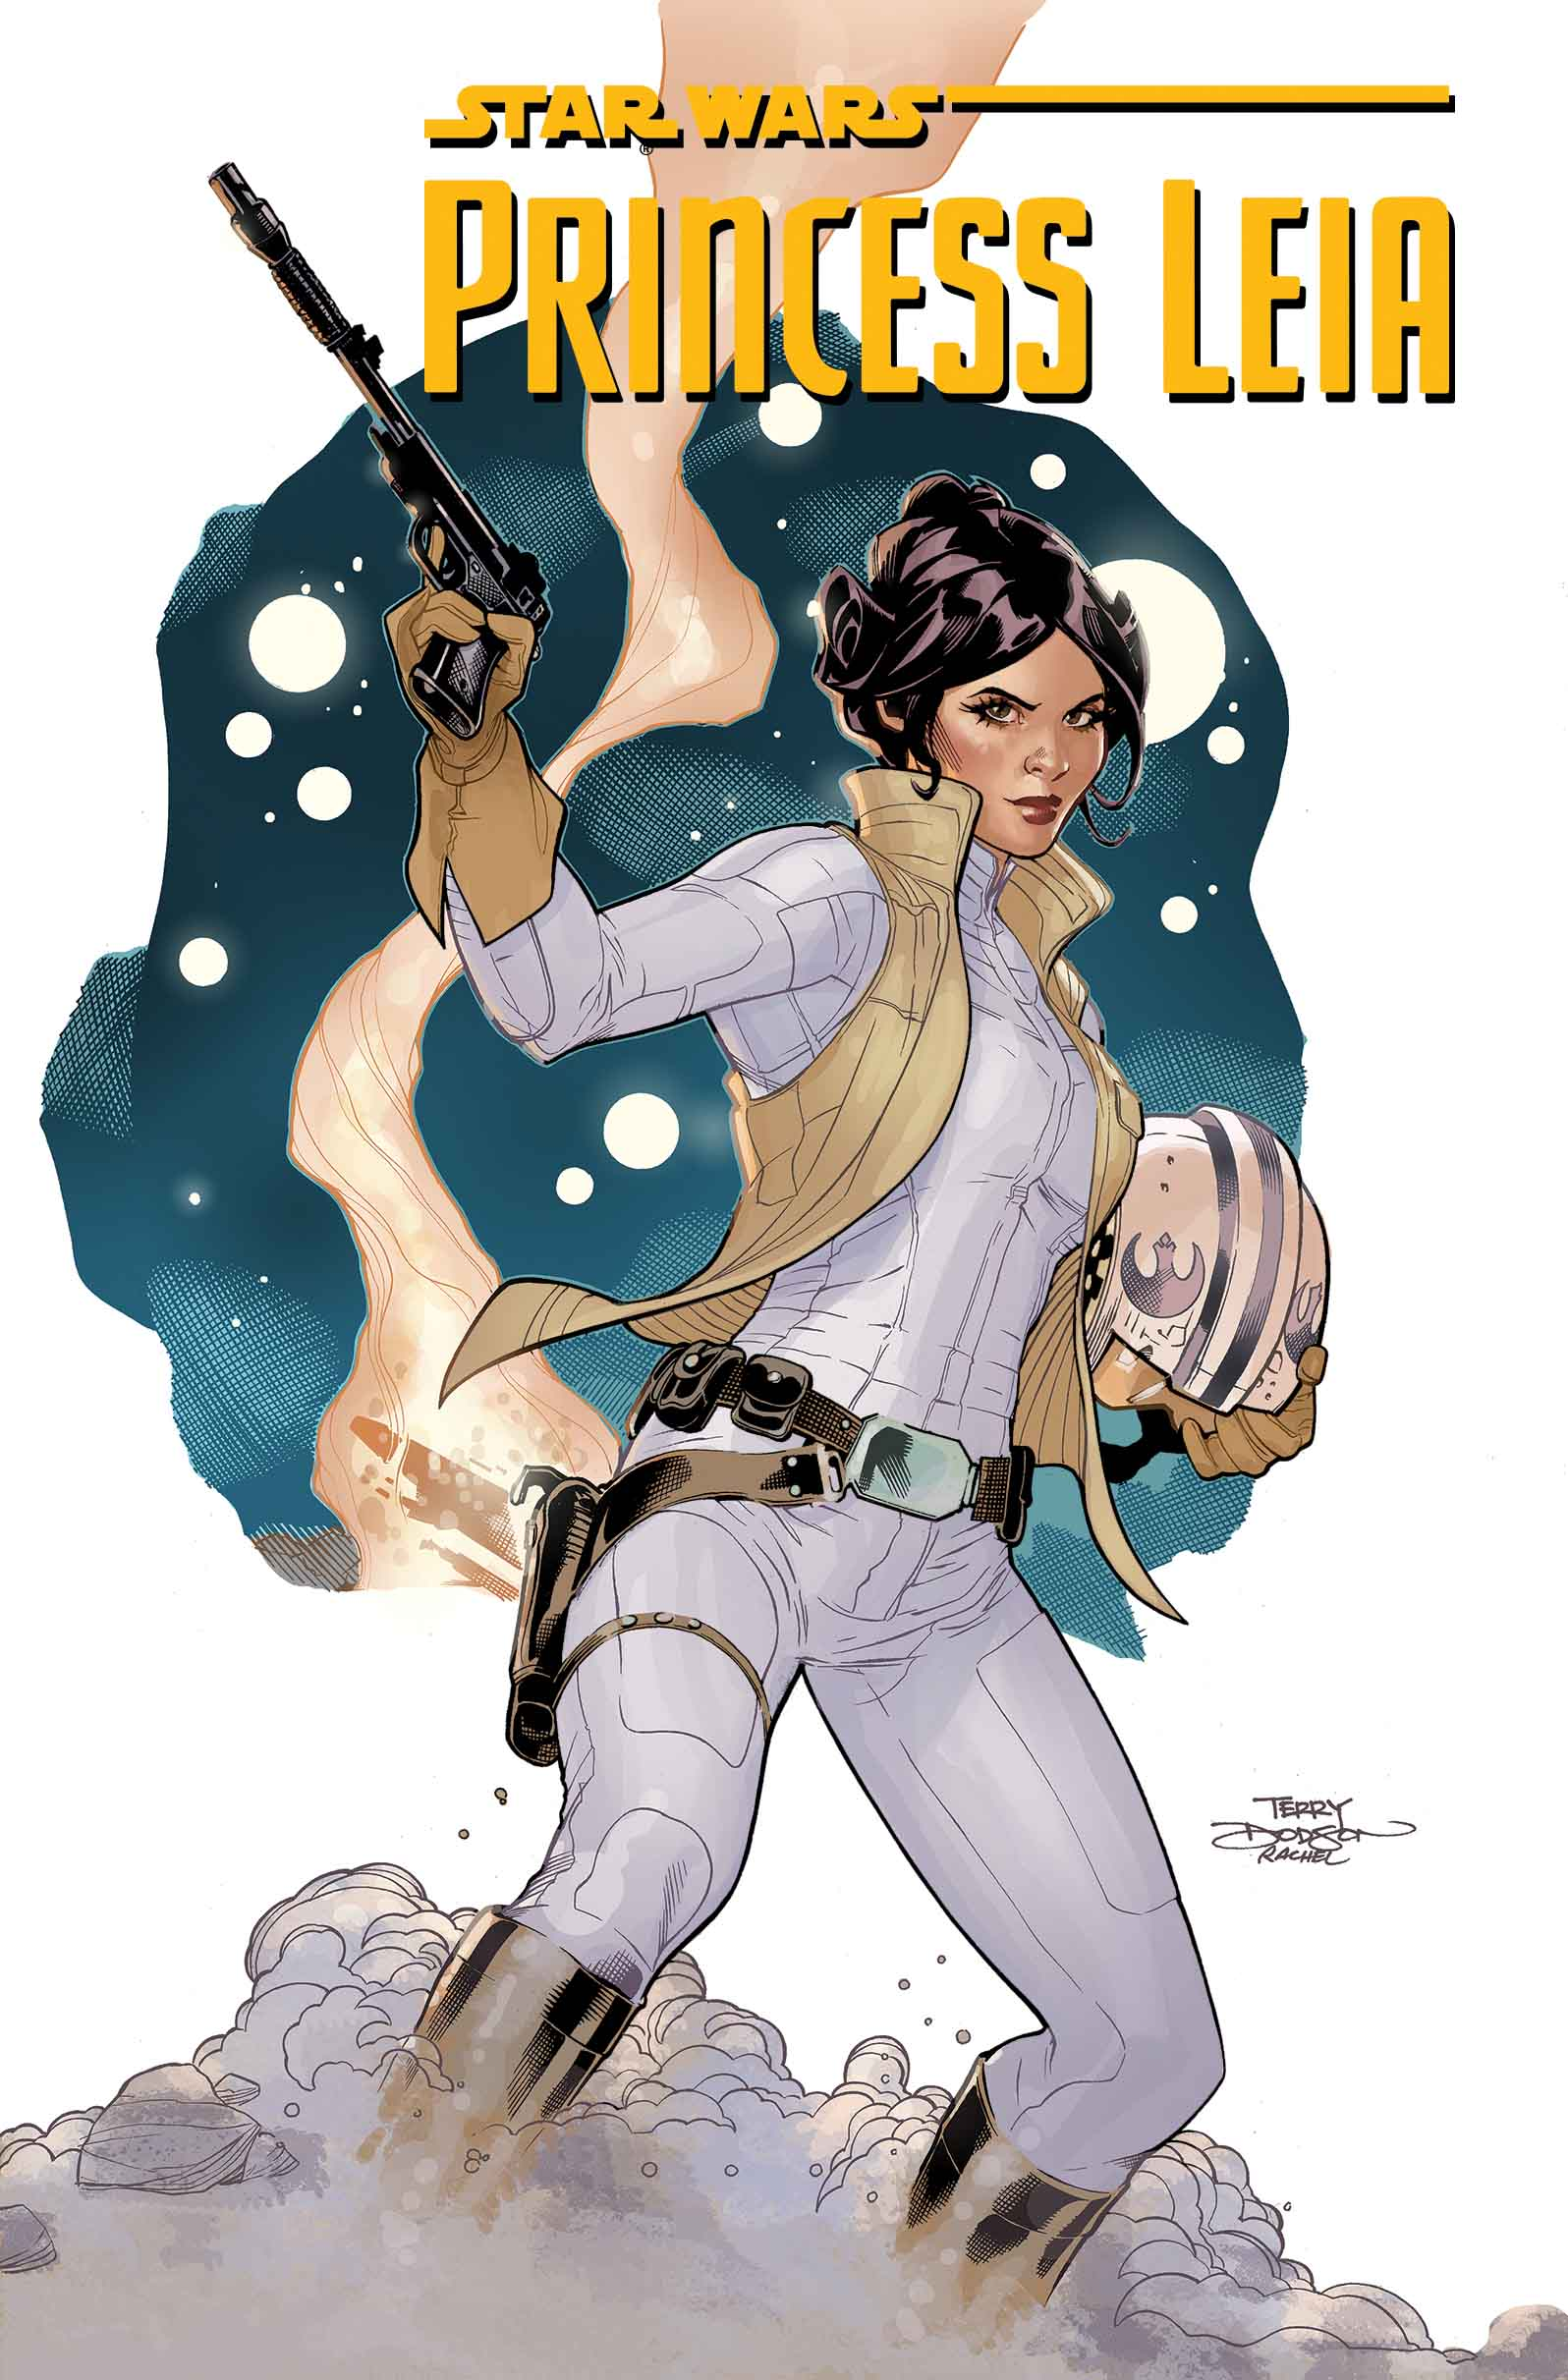 star wars princess leia 1 by mark waid terry dodson review comics reviews star wars. Black Bedroom Furniture Sets. Home Design Ideas